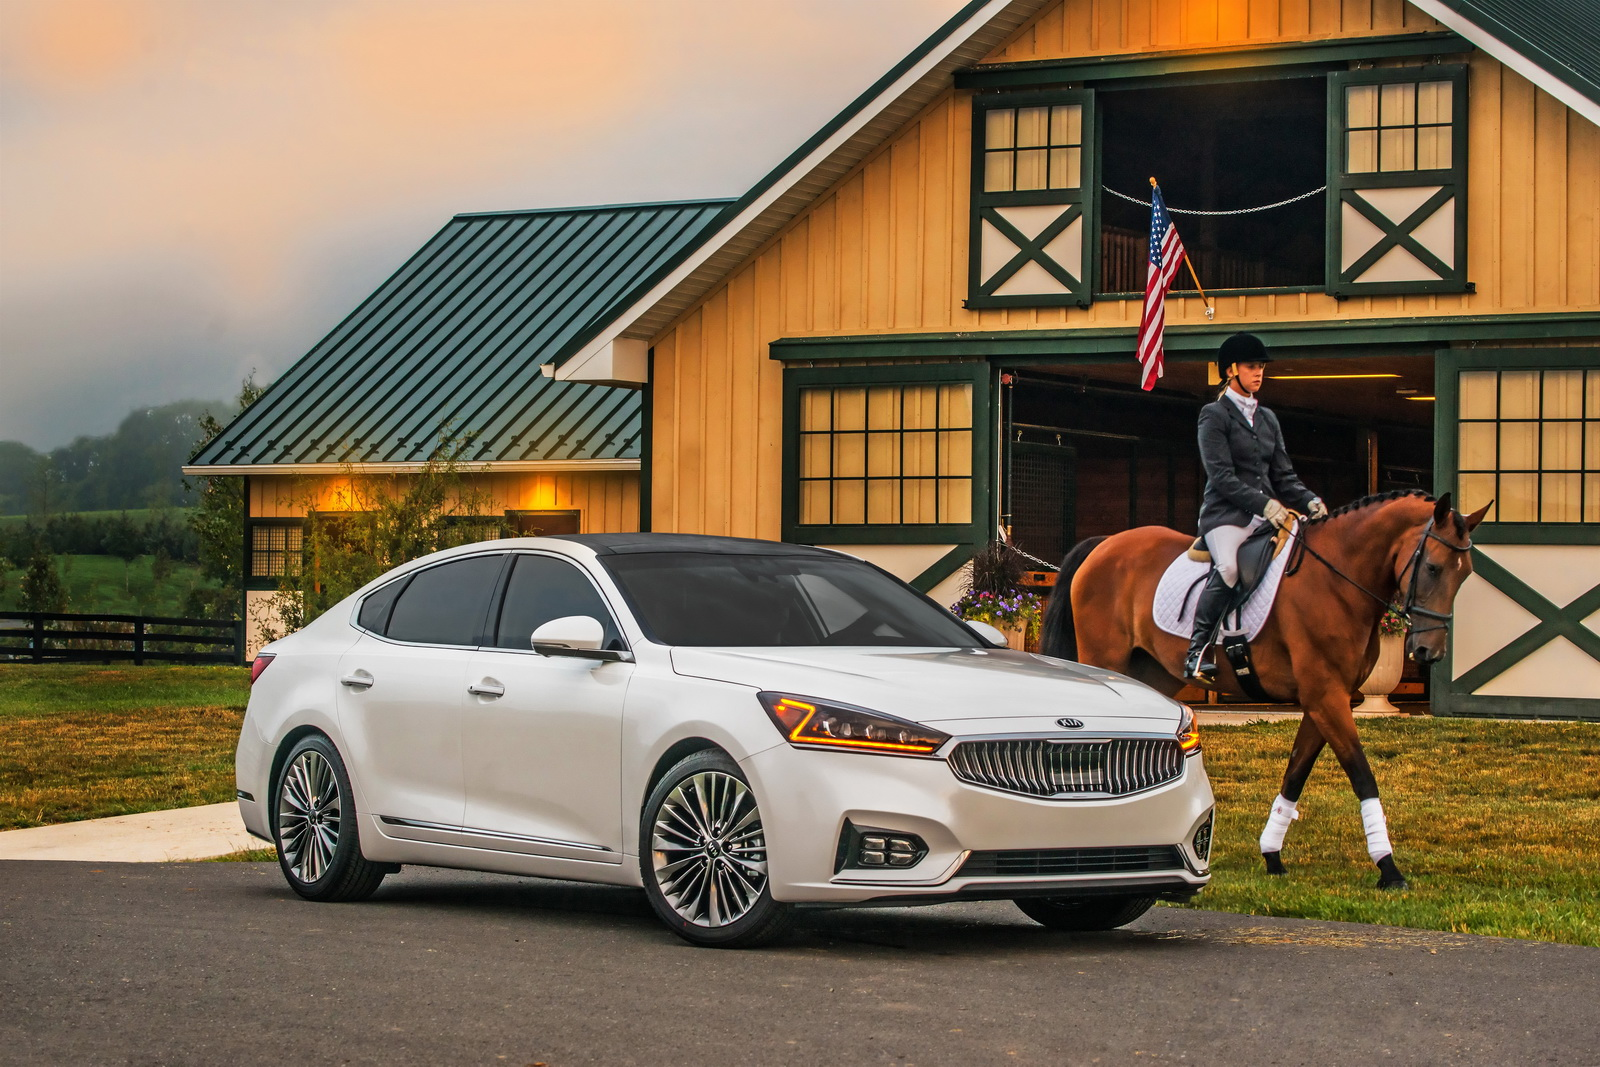 2019 Kia Cadenza photo - 1